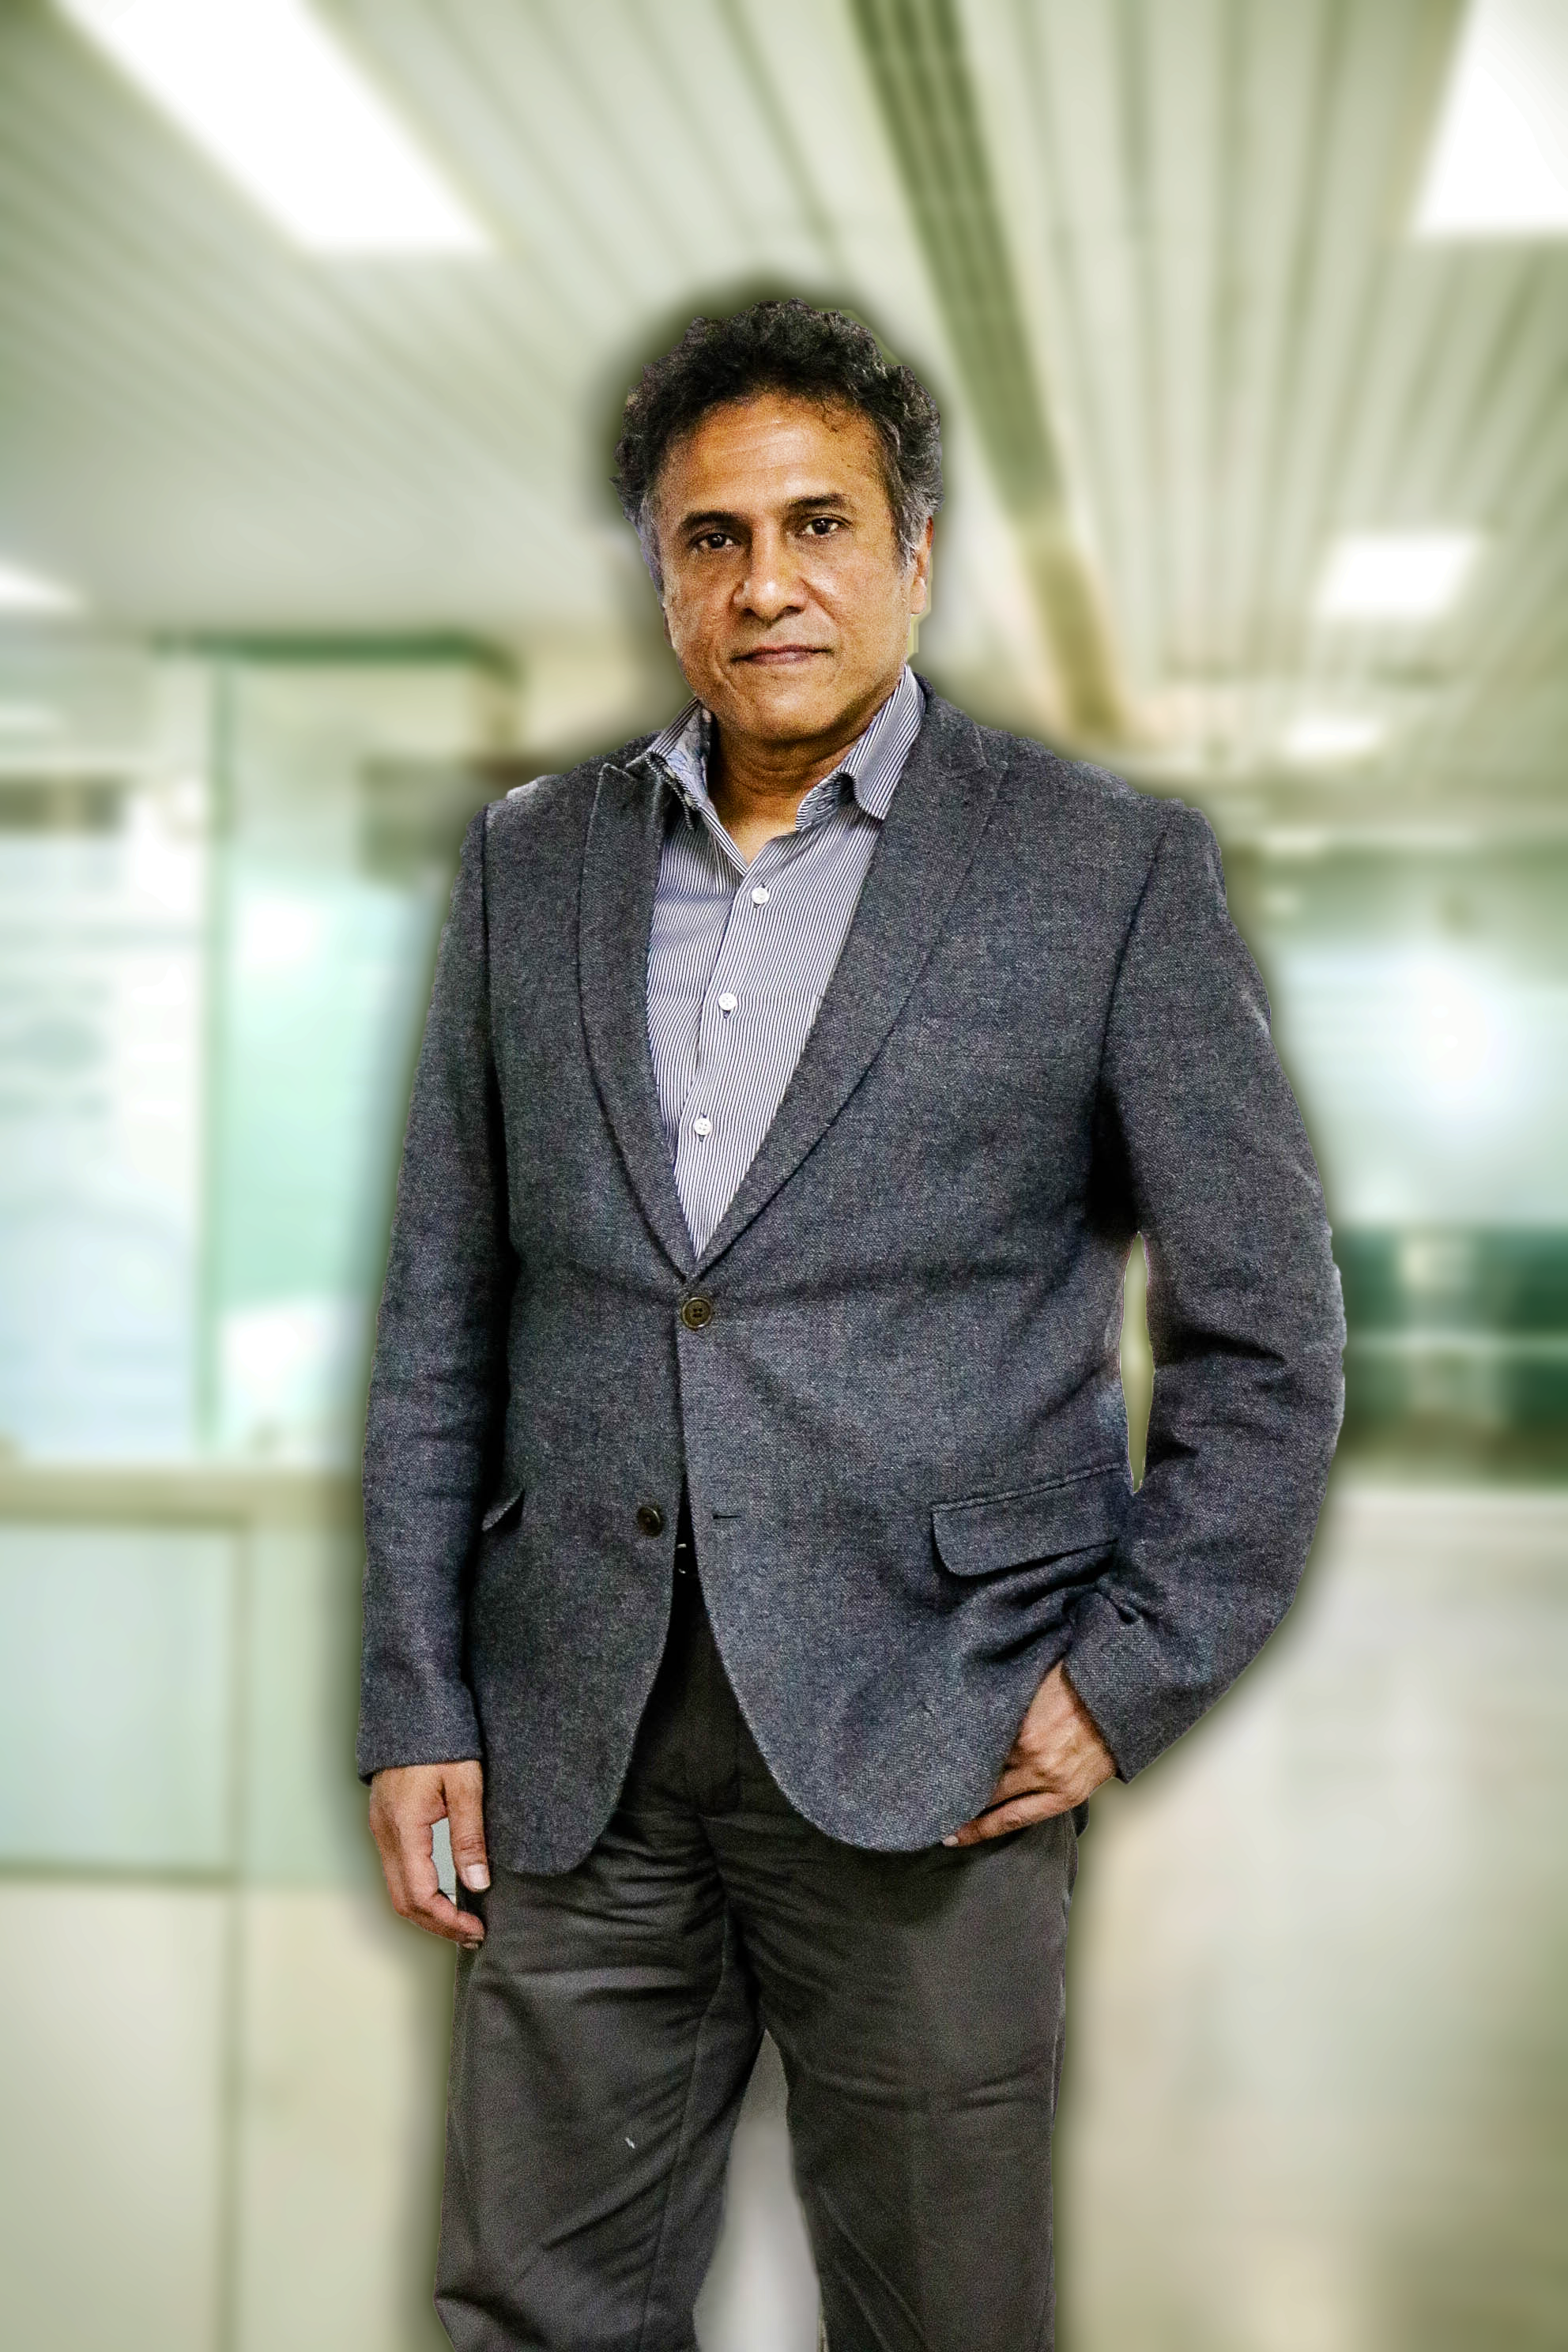 An Exclusive Interview with Mr. Yusuf Hussain - CEO Ignite